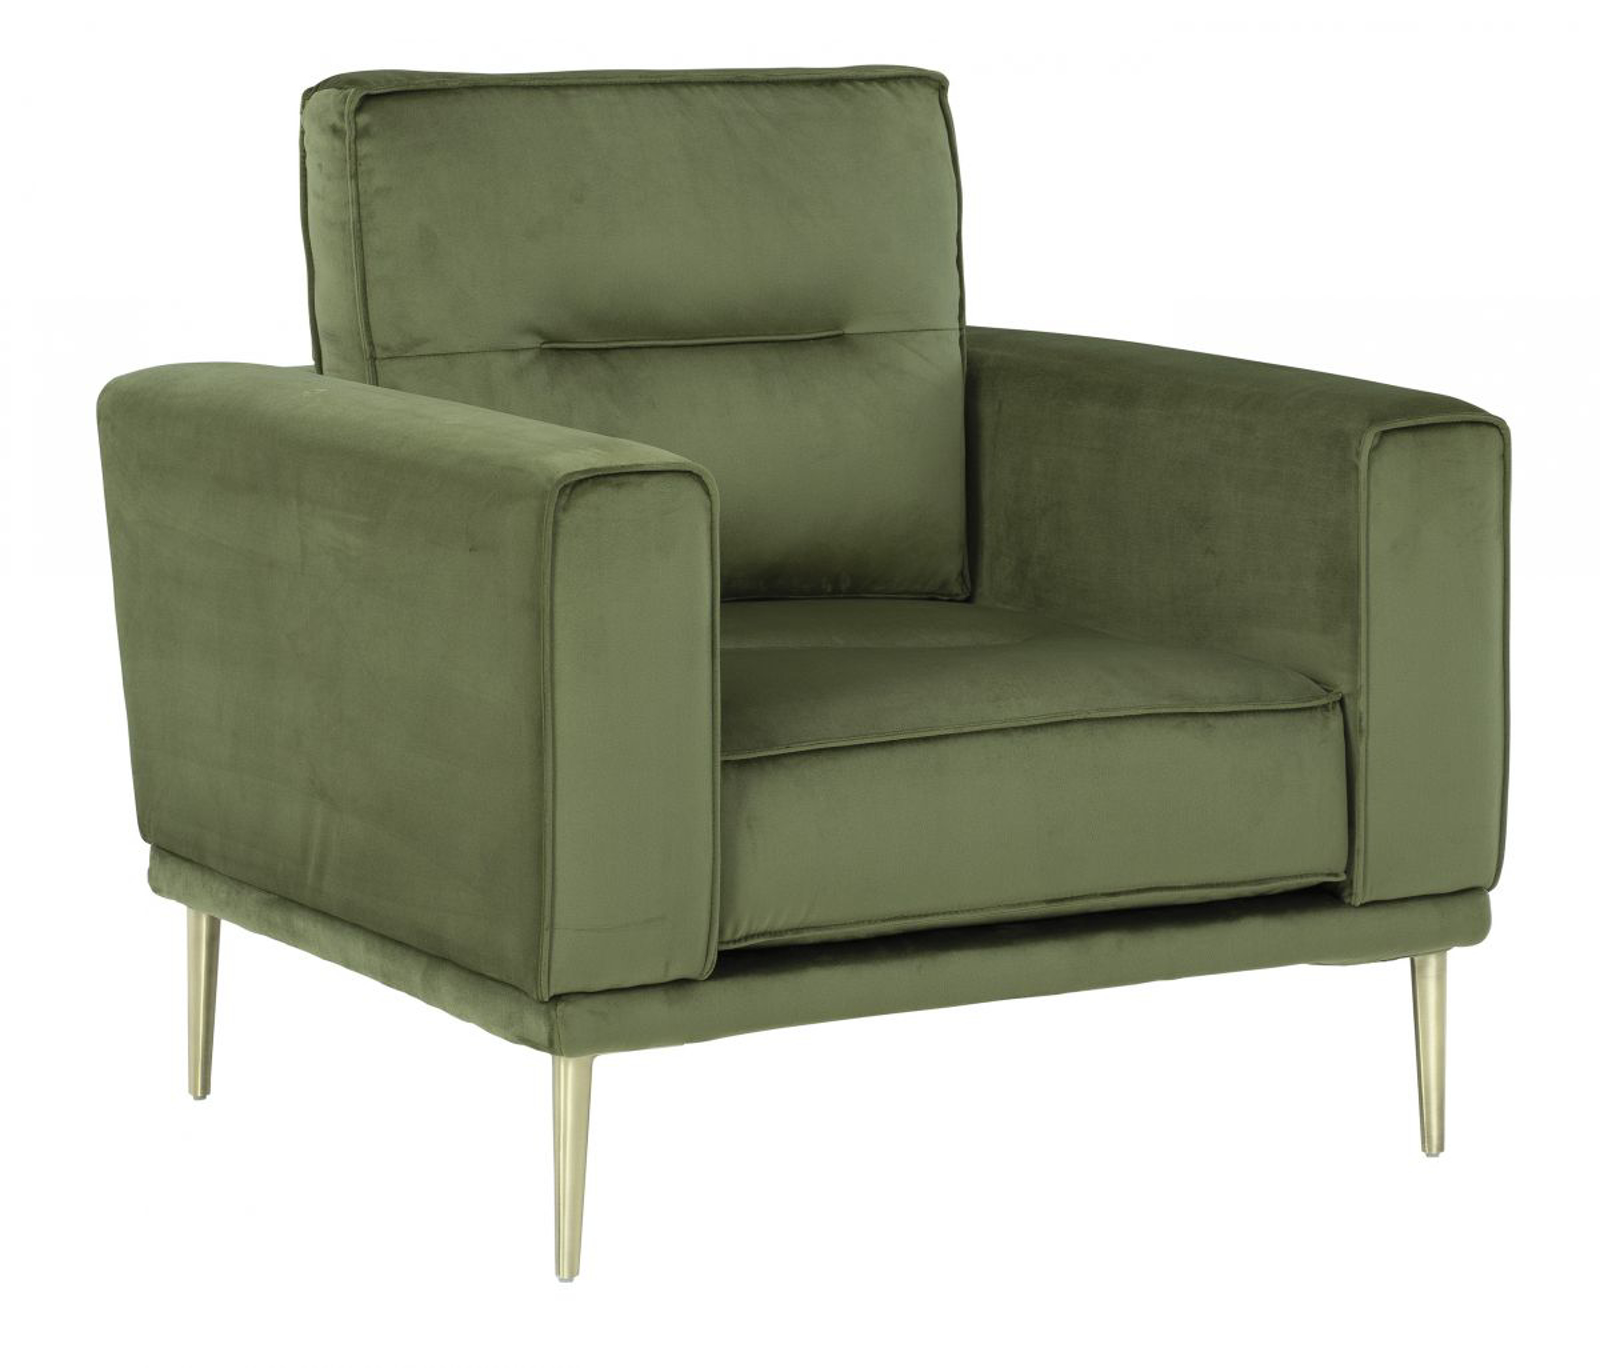 Picture of Macleary Chair